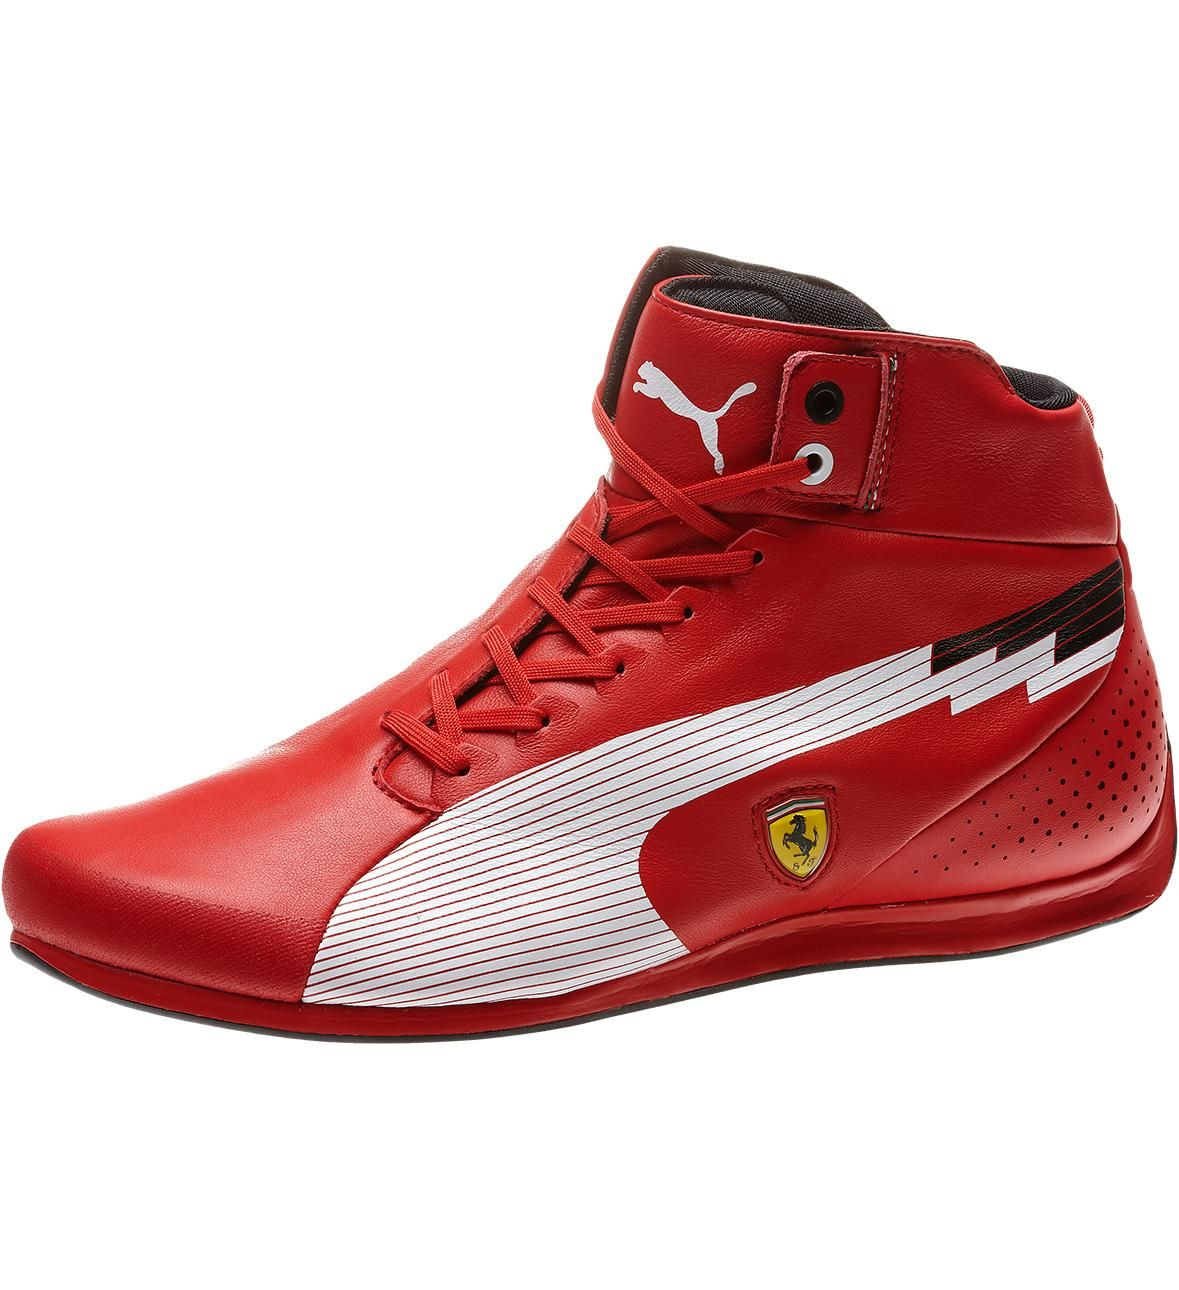 e91e7322803b19 PUMA Ferrari evoSPEED Mid Shoes.  130.00